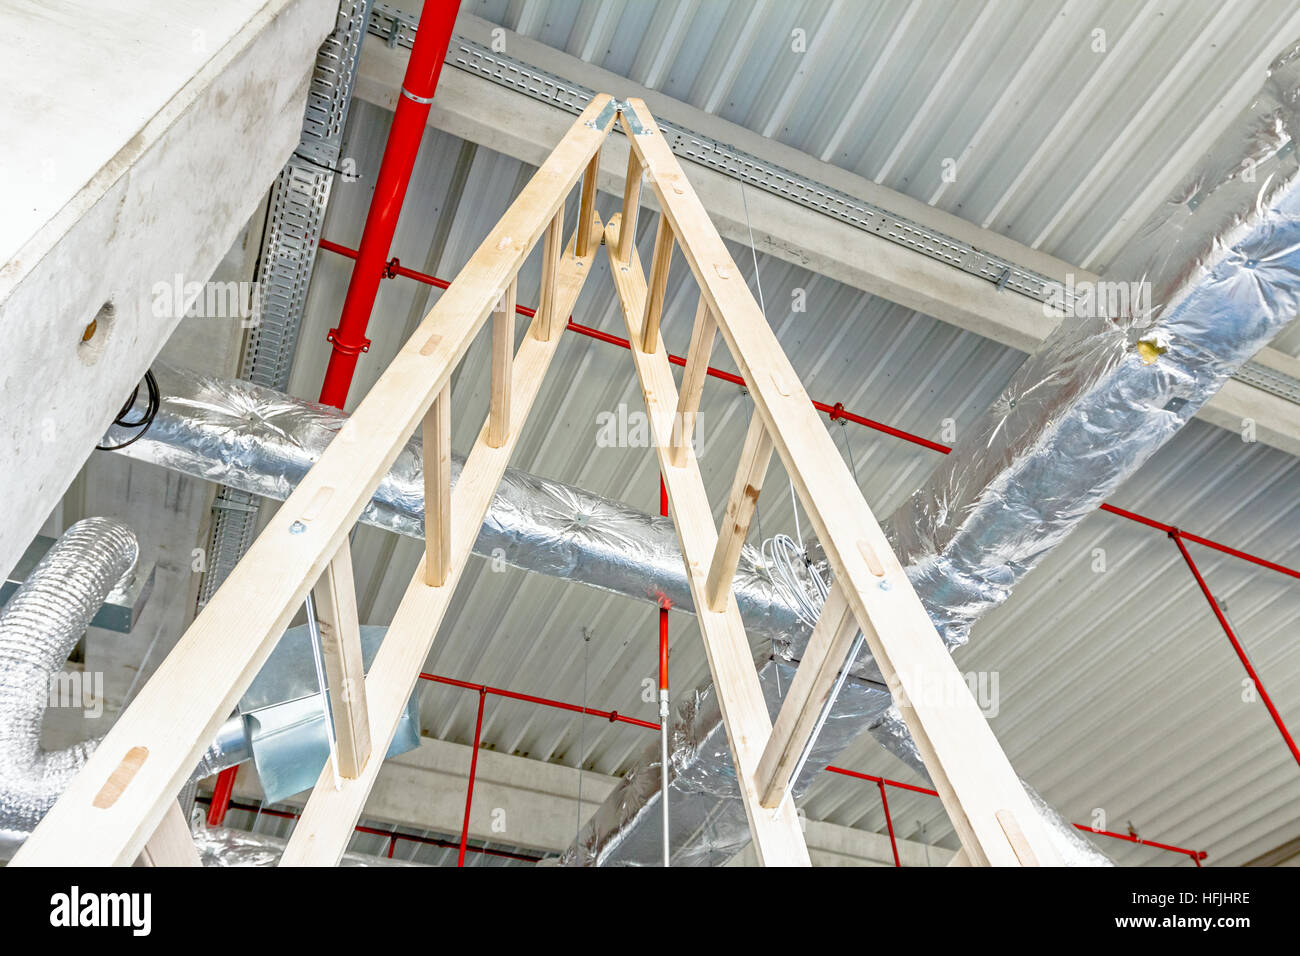 Wooden stepladder and fire fighting system is placed on the ceiling. Stock Photo